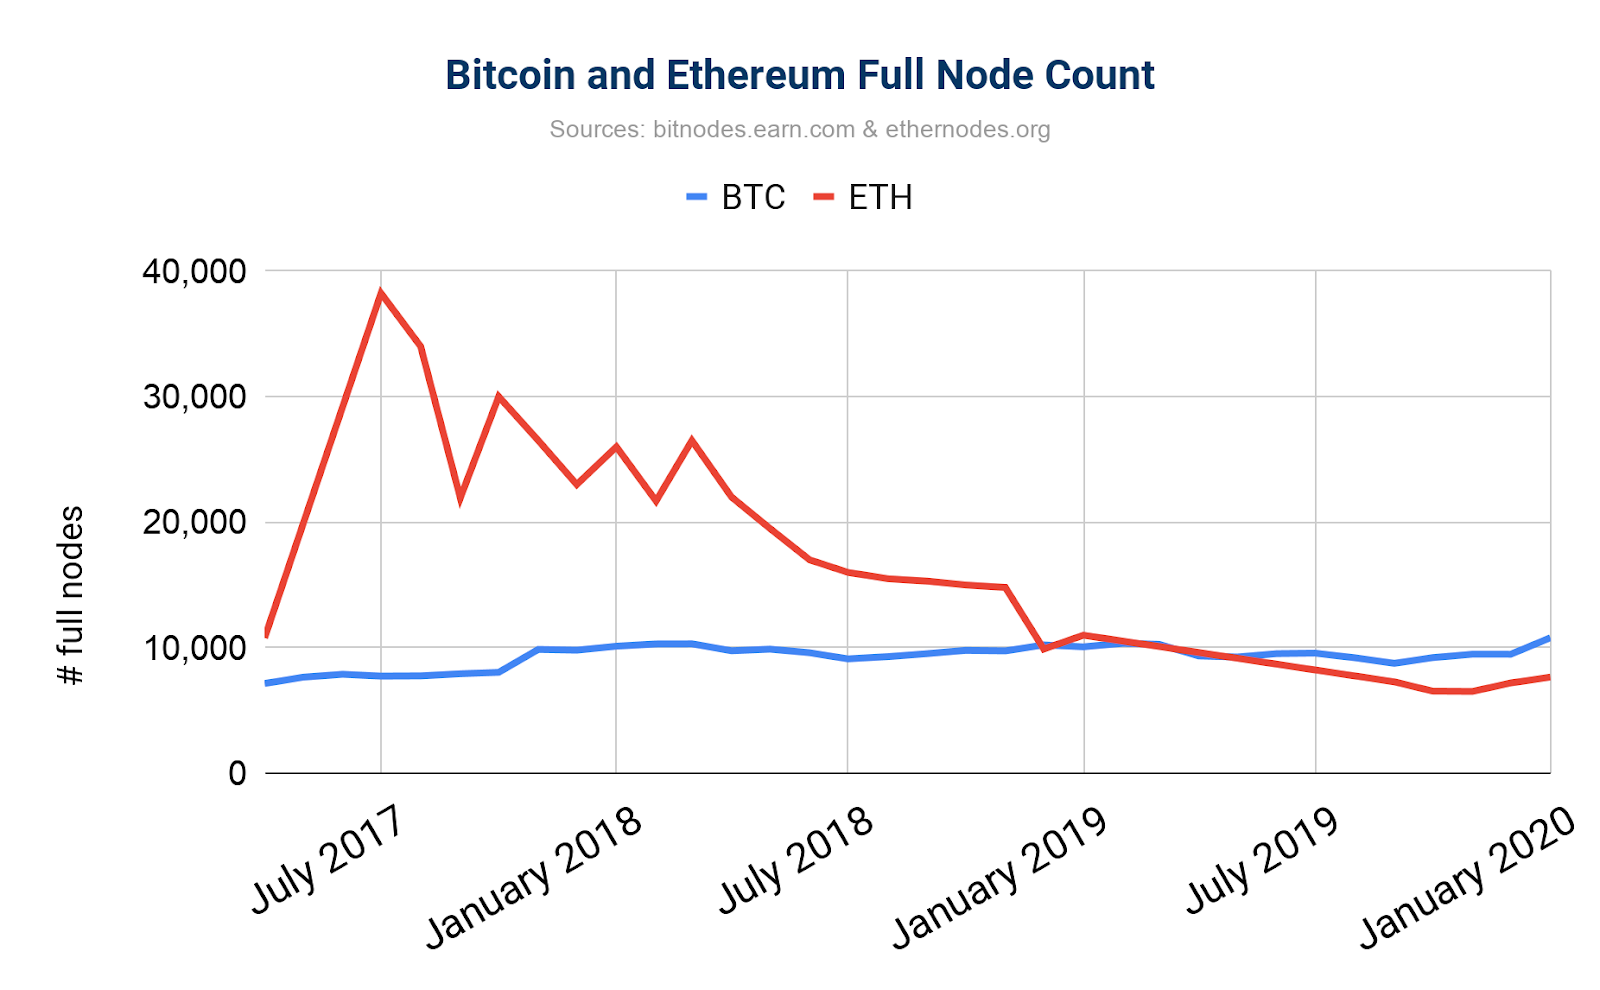 Bitcoin and Ethereum Full Node Count